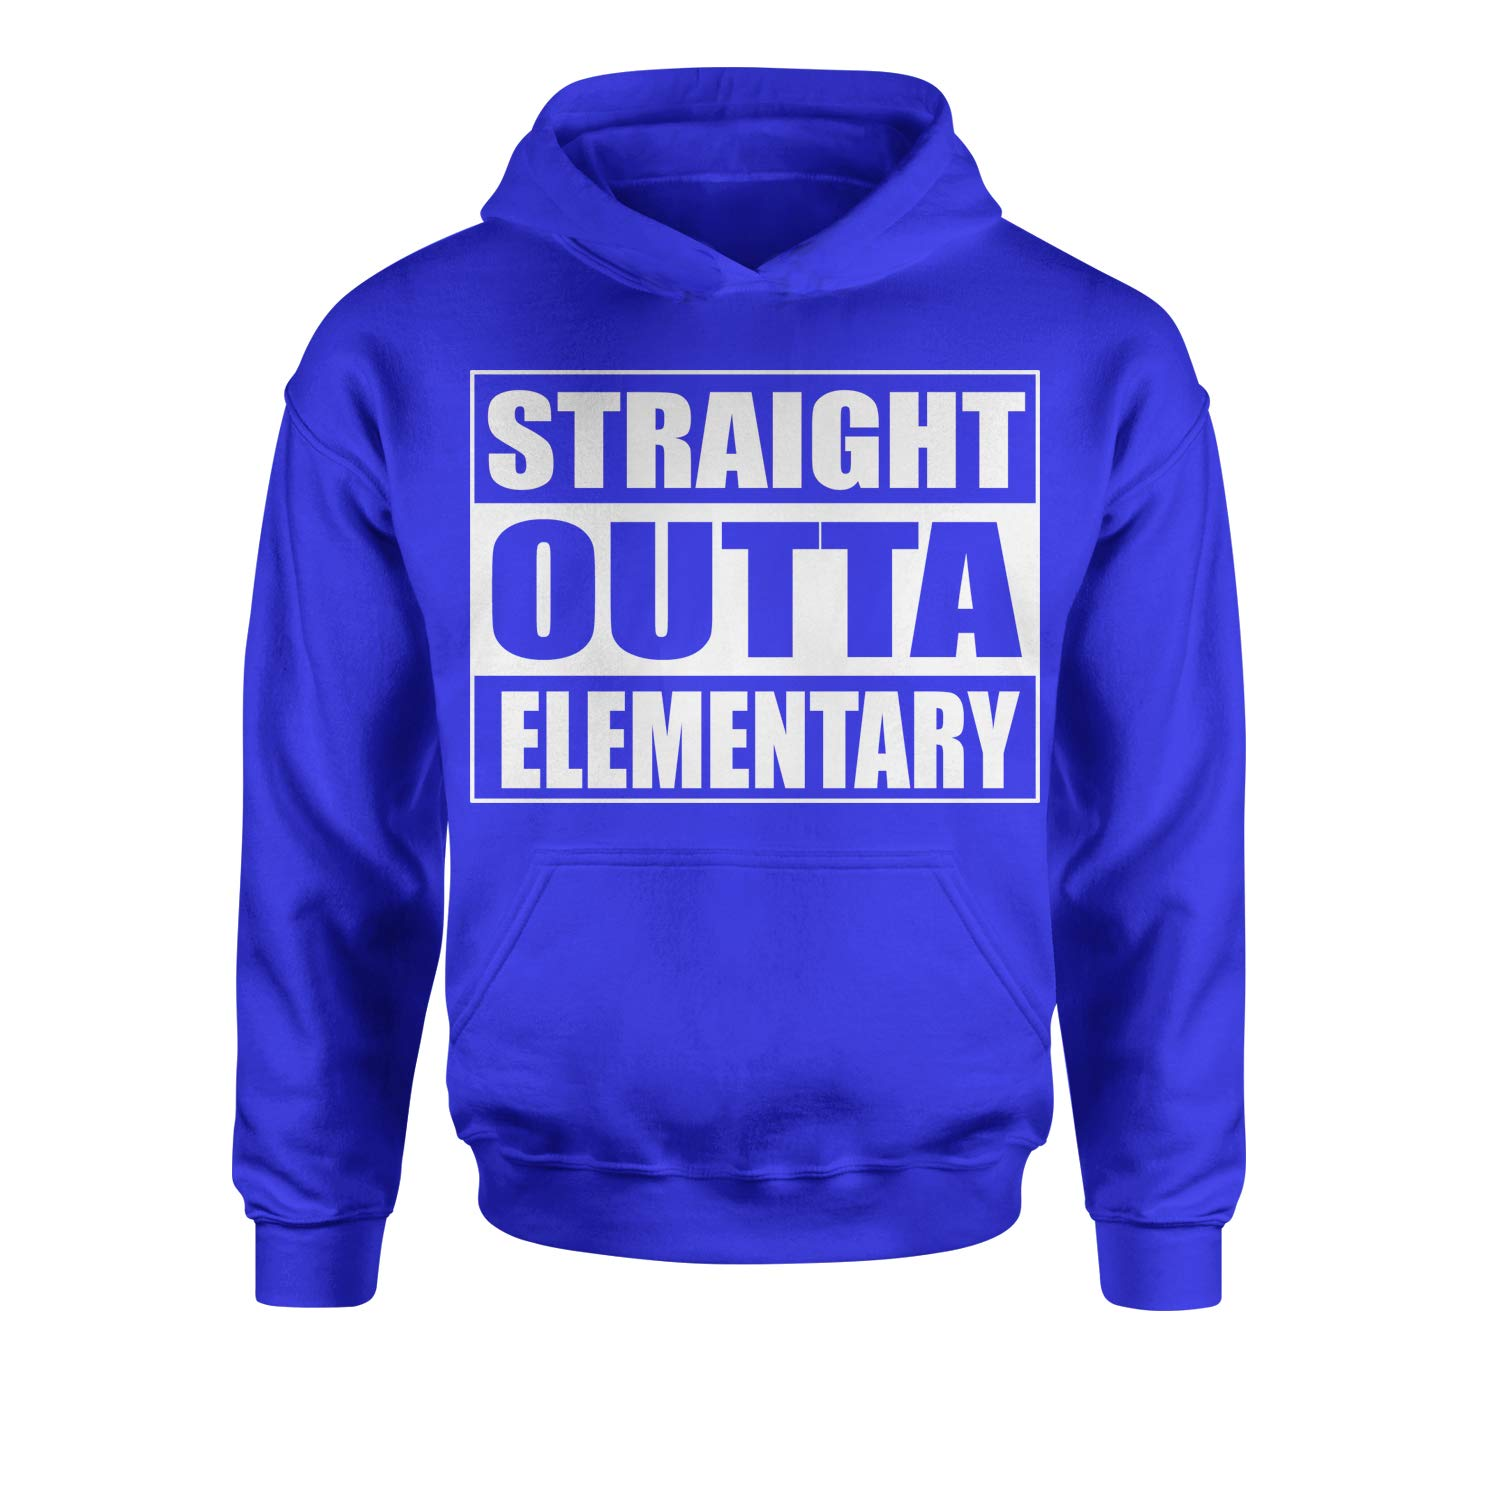 Expression Tees Straight Outta Elementary Youth-Sized Hoodie